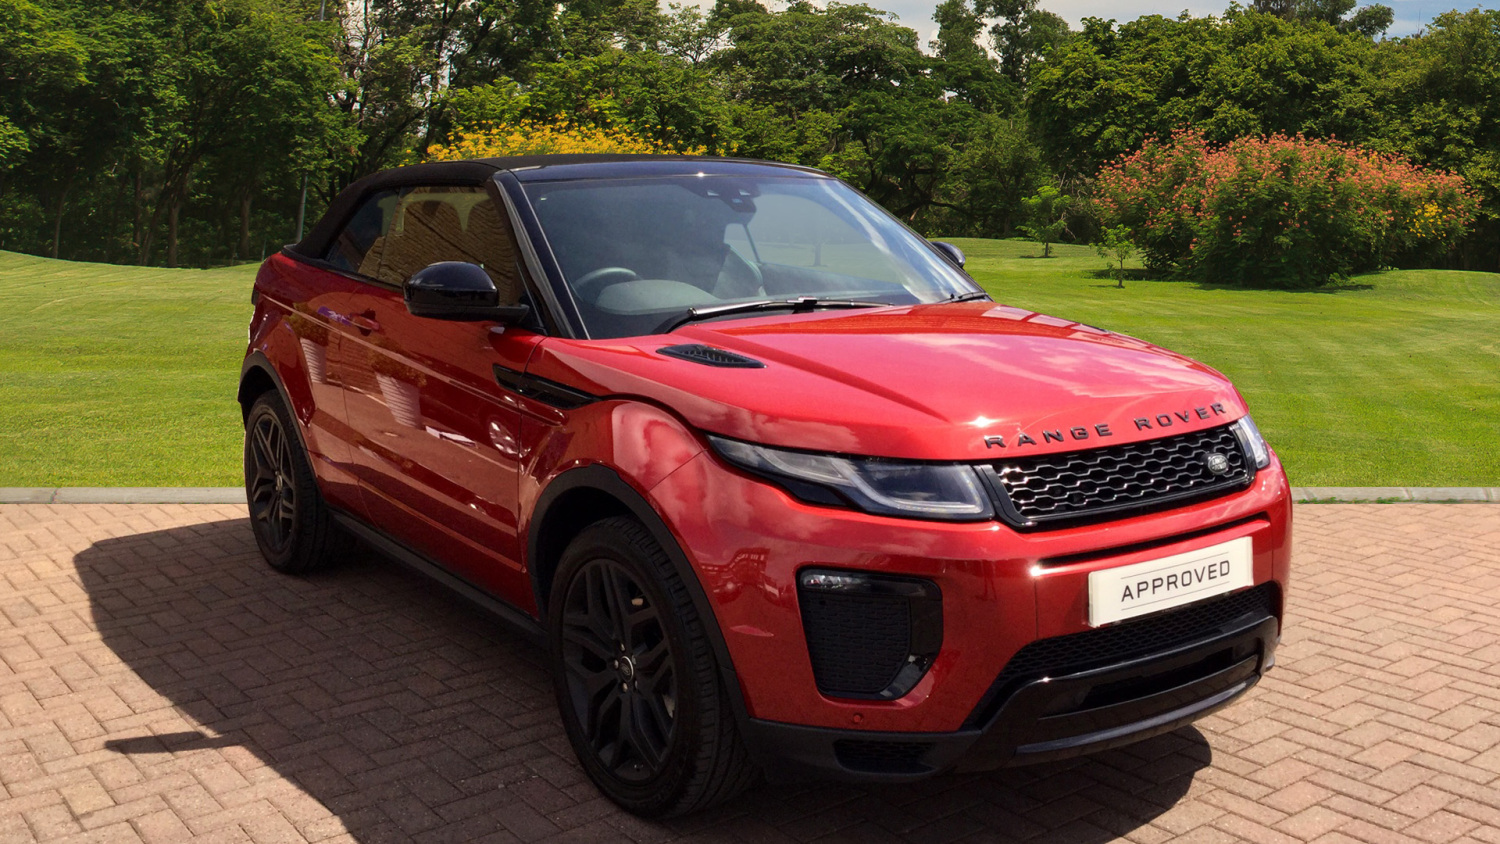 buy online land rover range rover evoque convertible 2 0 td4 hse dynamic 2dr auto diesel. Black Bedroom Furniture Sets. Home Design Ideas